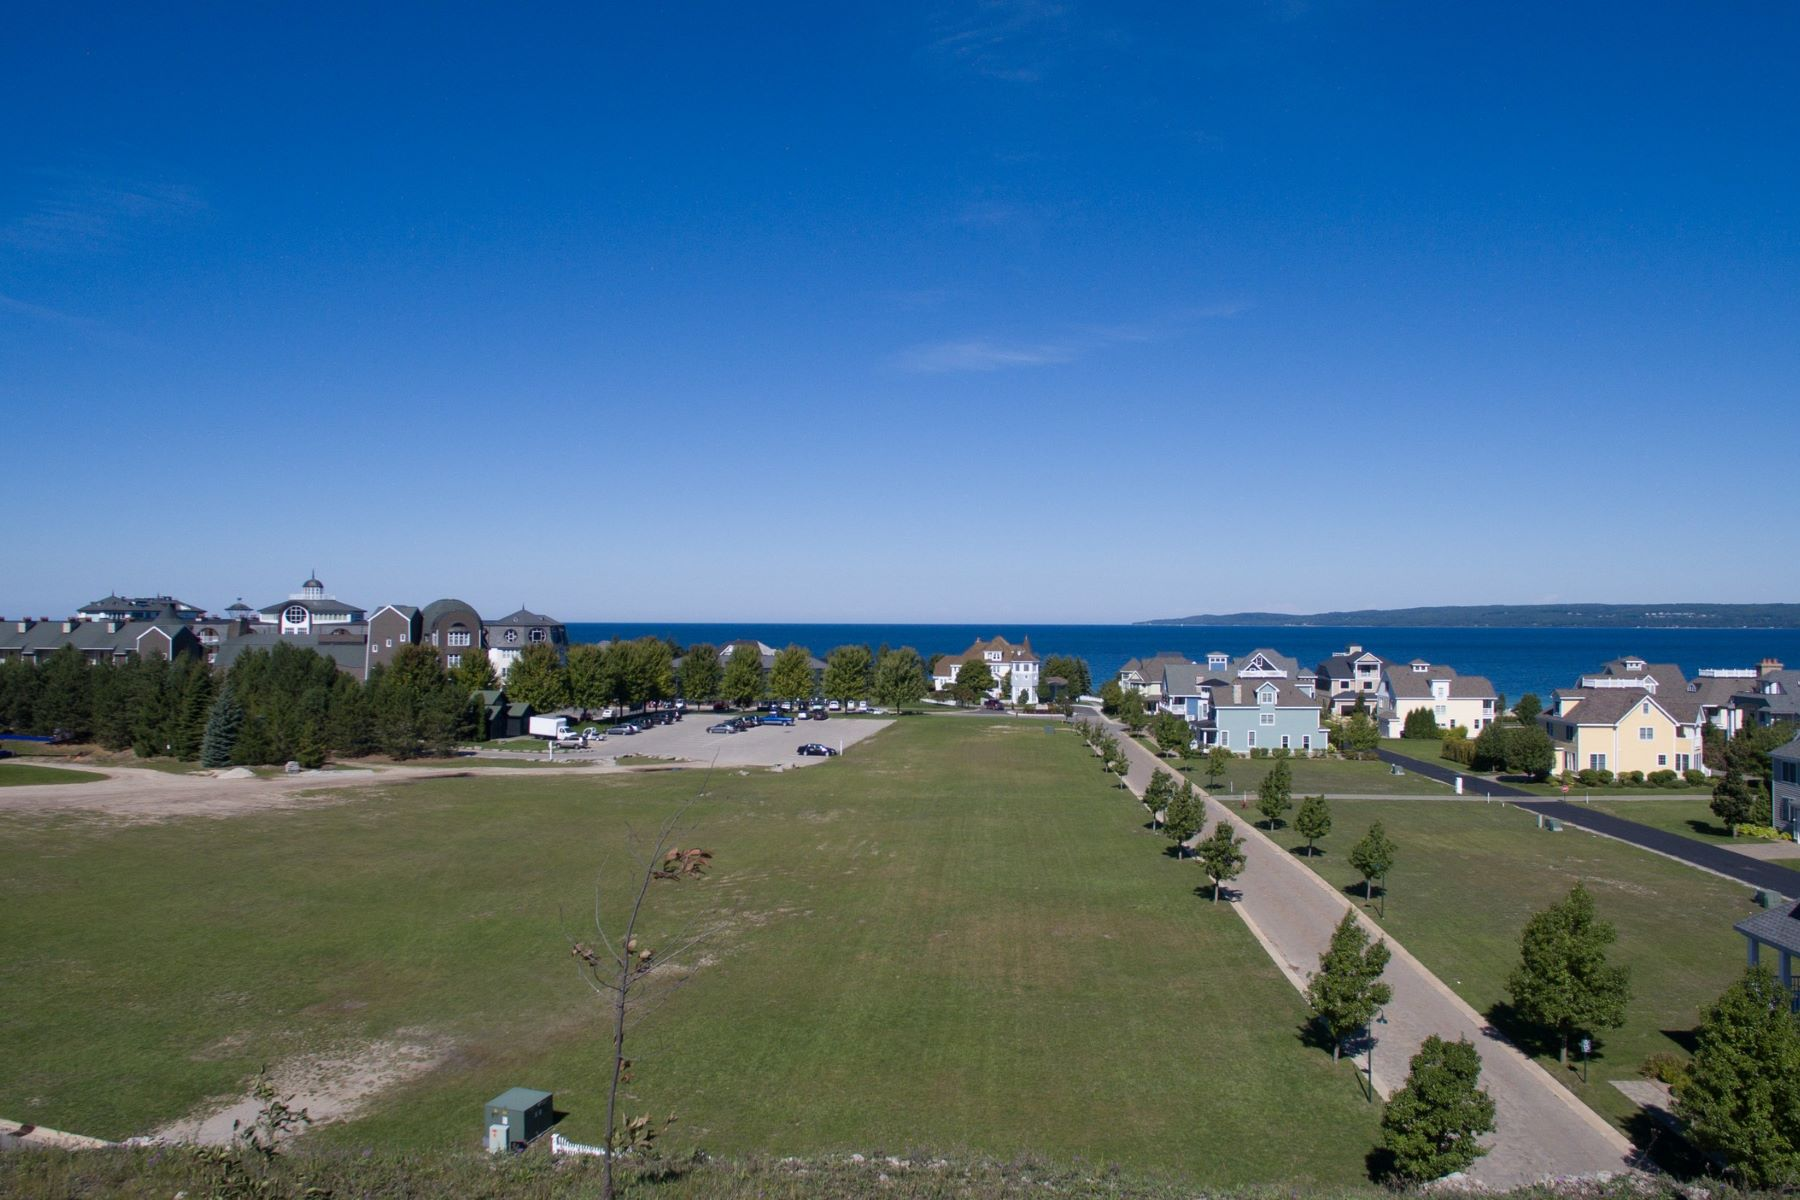 Land for Sale at Unit 5, The Ridge 3776 Cliffs Drive, Unit 5, The Ridge Bay Harbor, Michigan 49770 United States